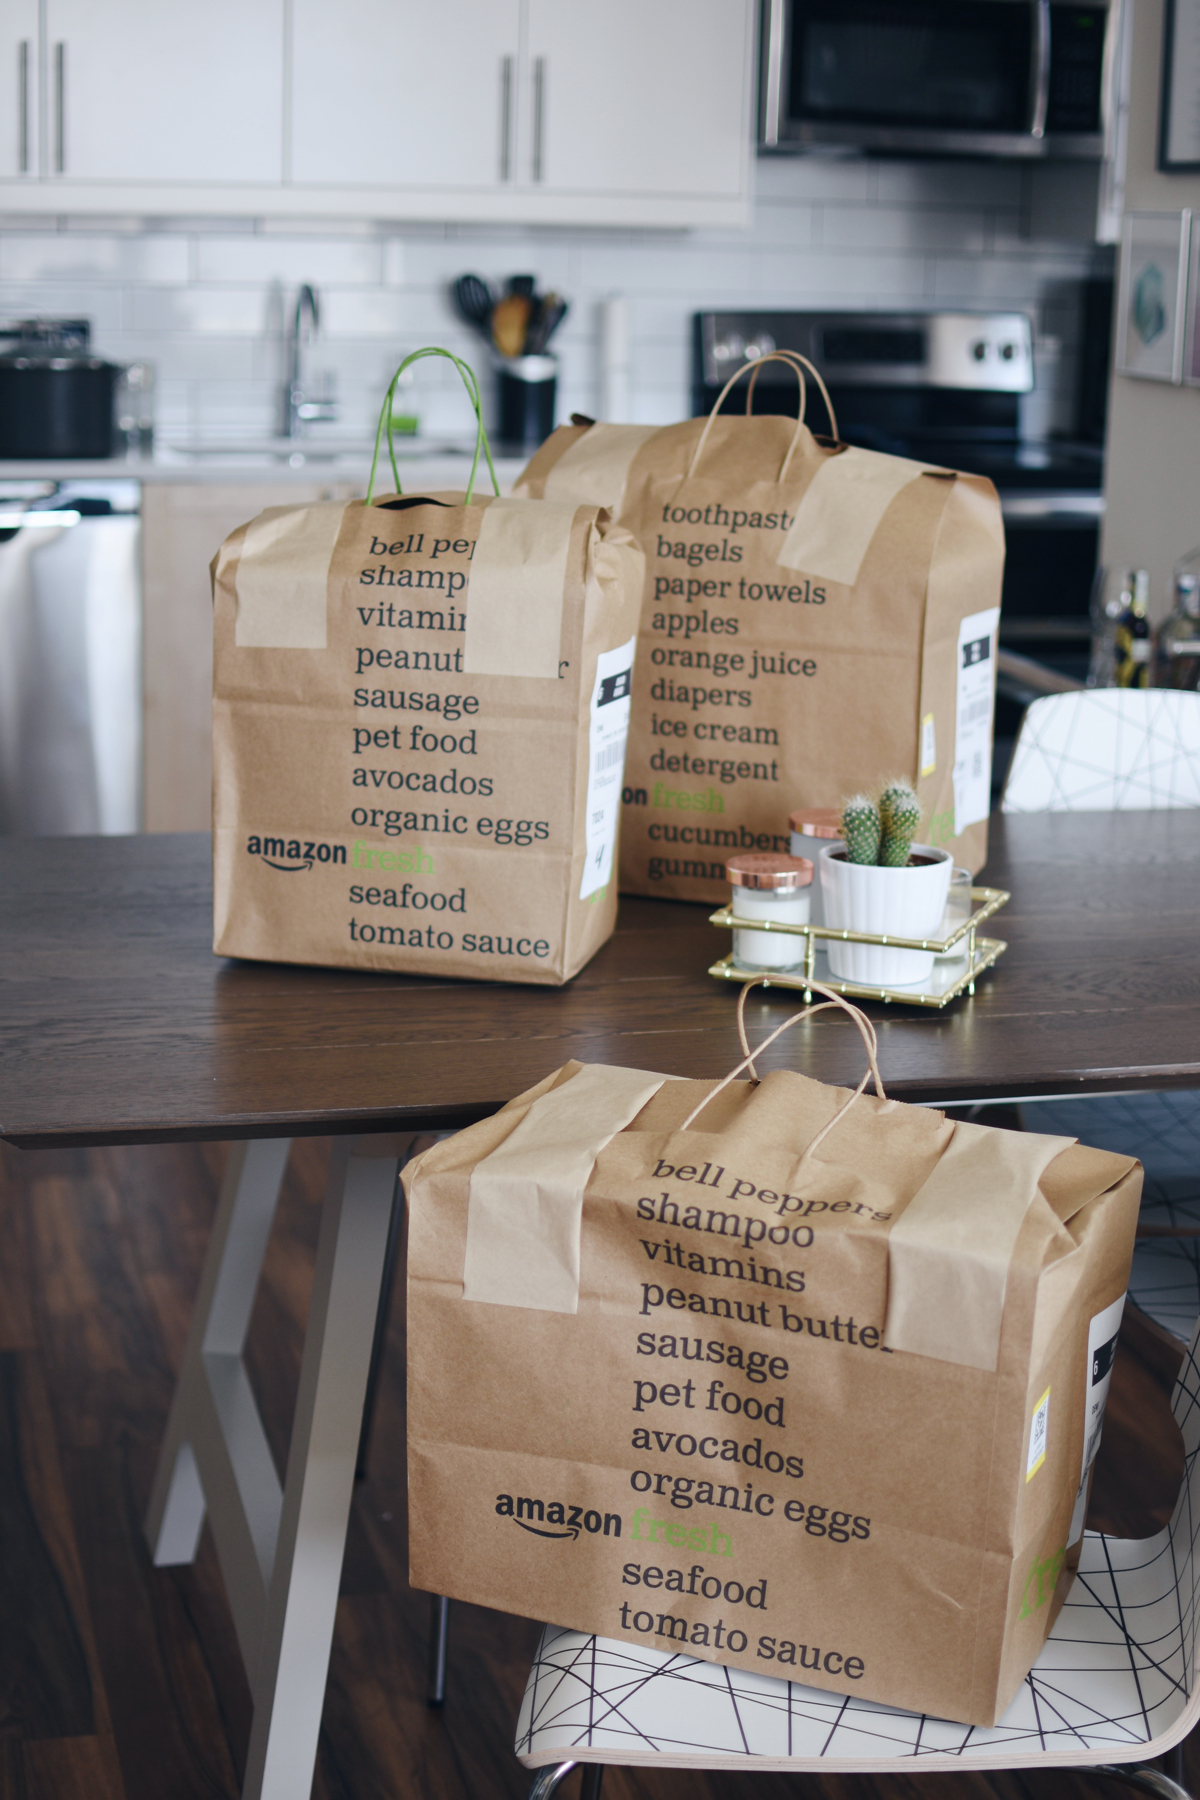 AmazonFresh Launched in Denver